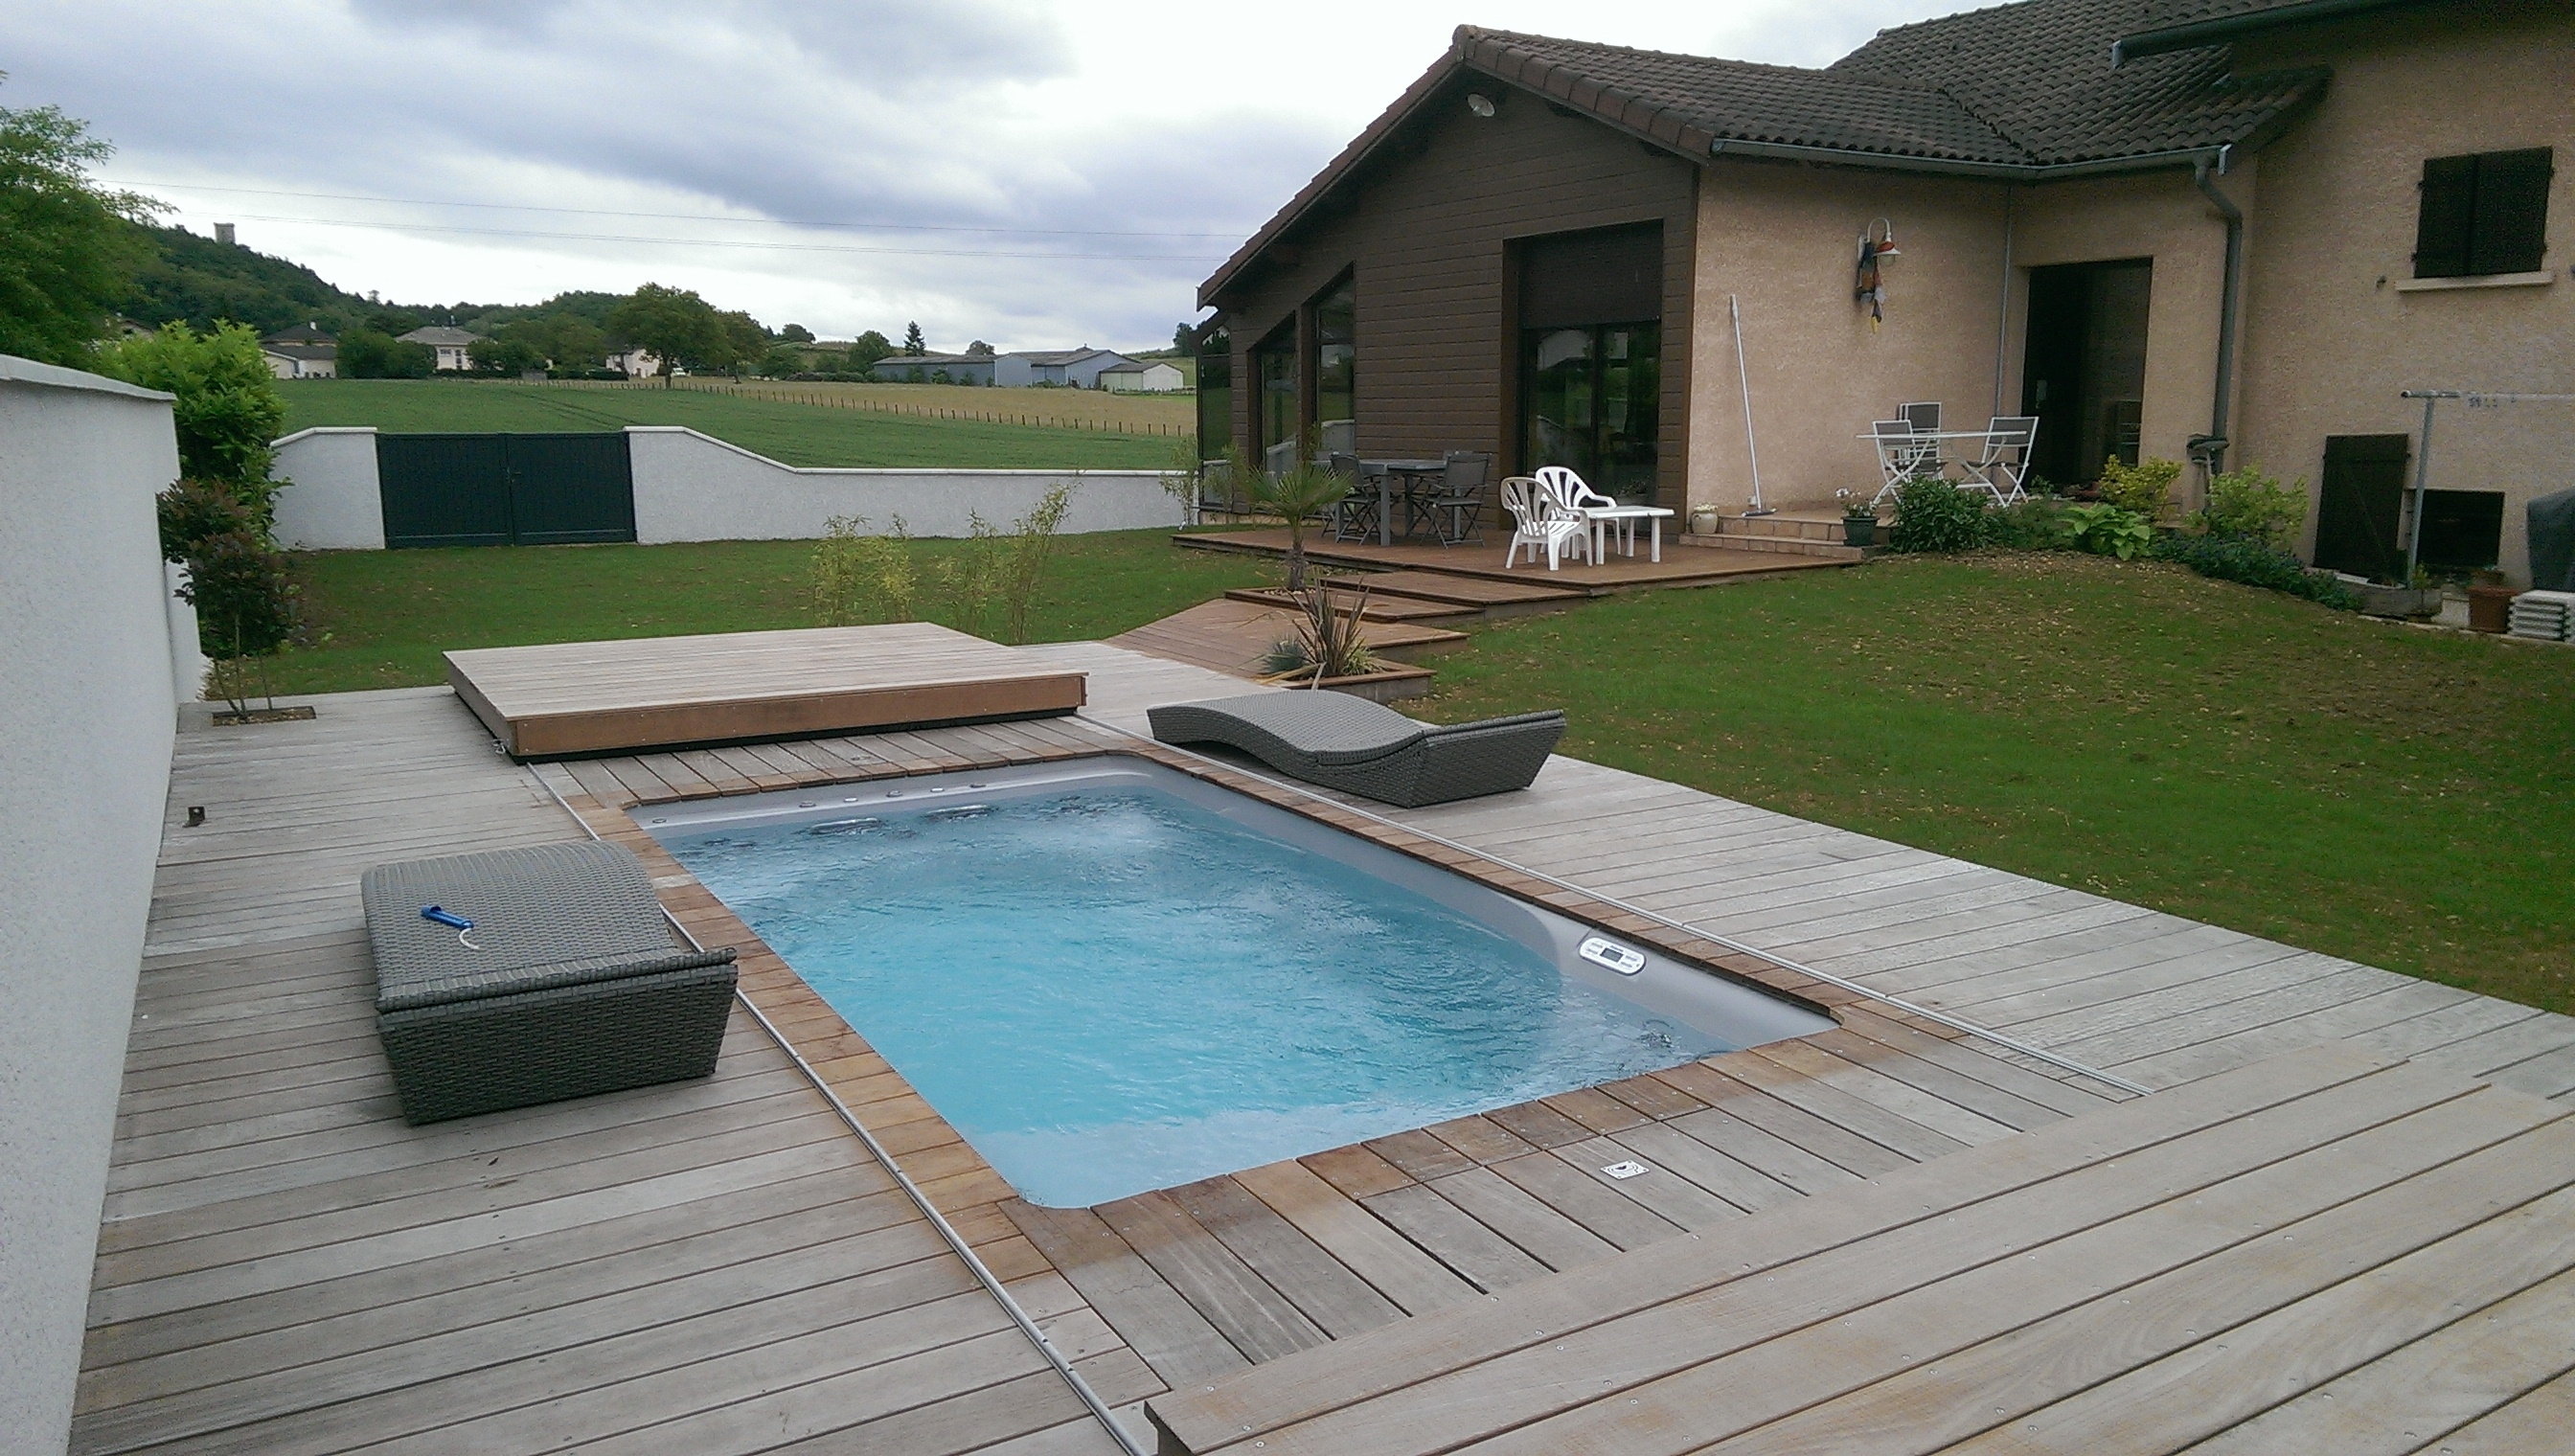 Piscine spa baln o nage contre courant pretty pool for Piscine contre courant